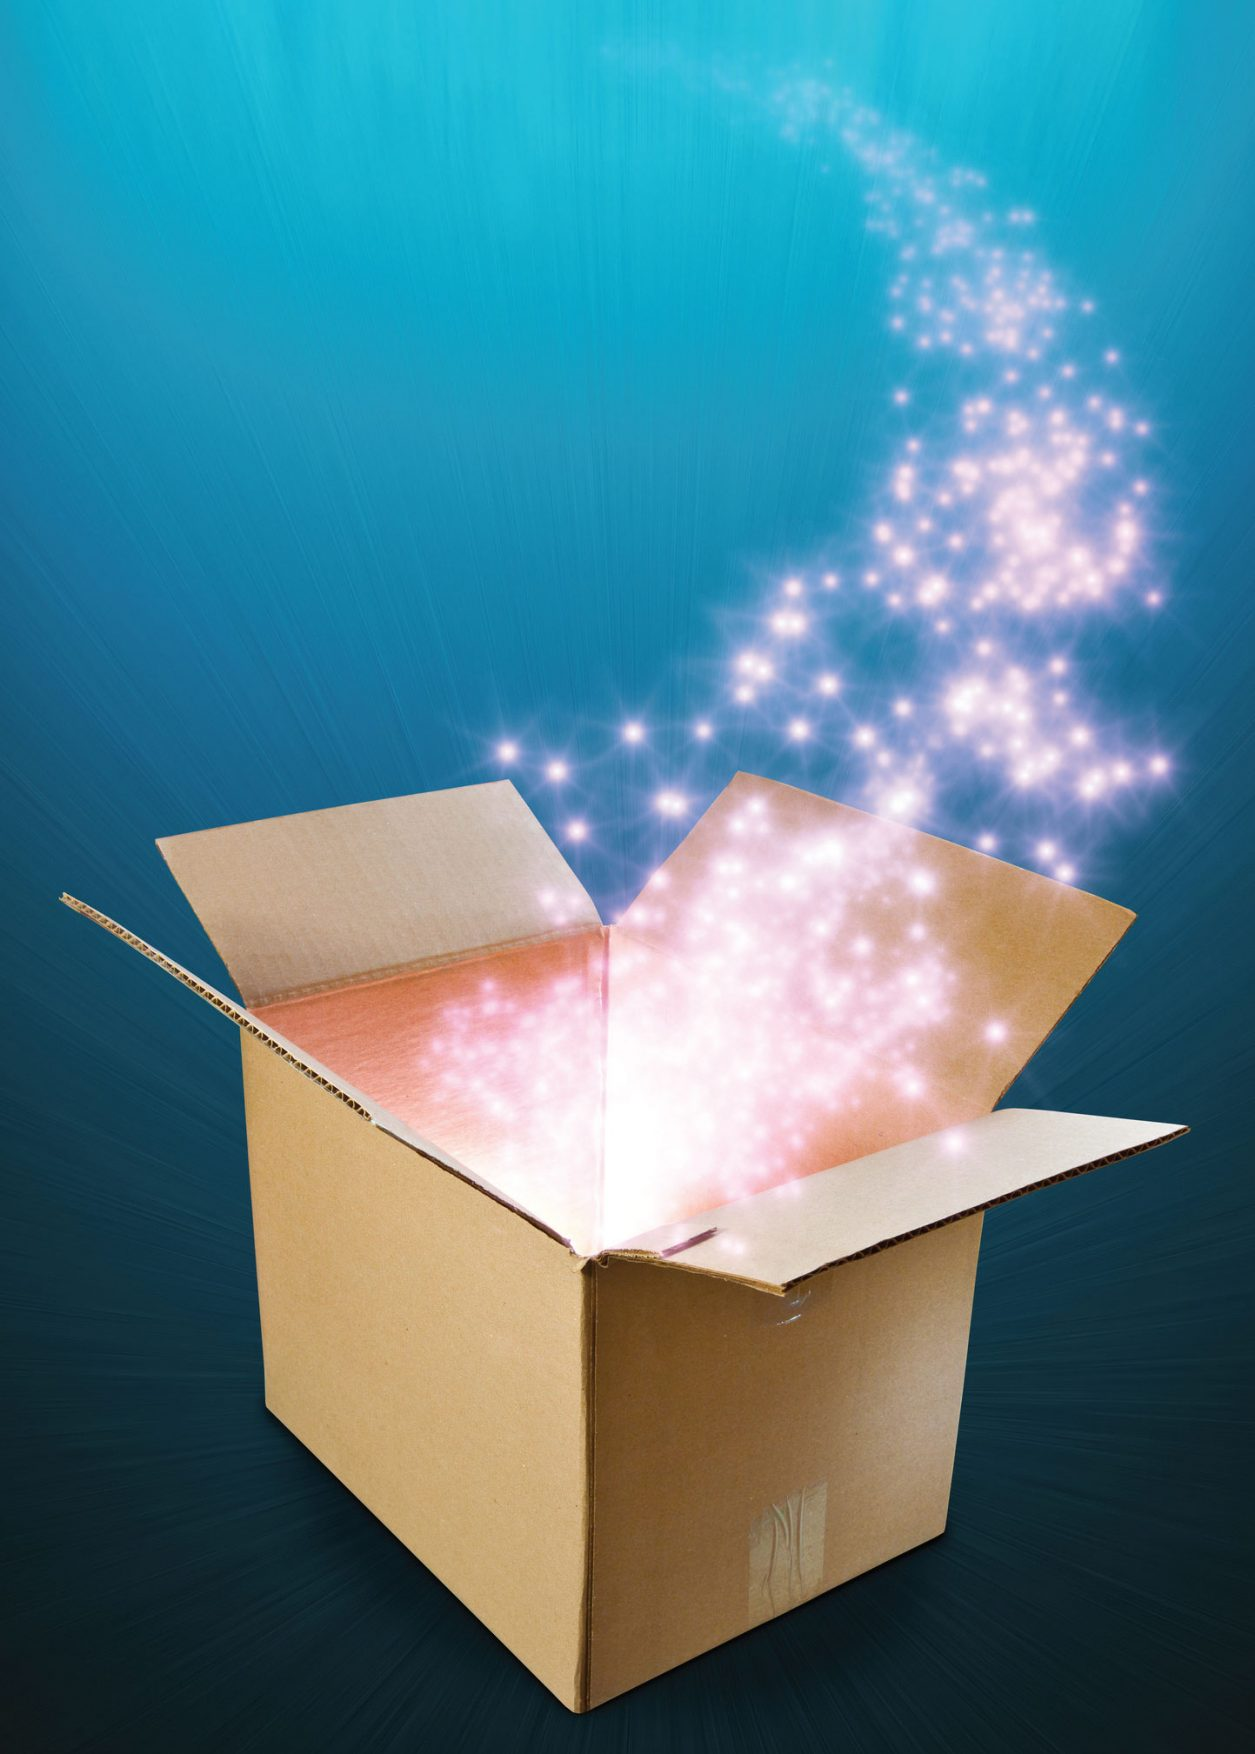 Open box with stars coming out